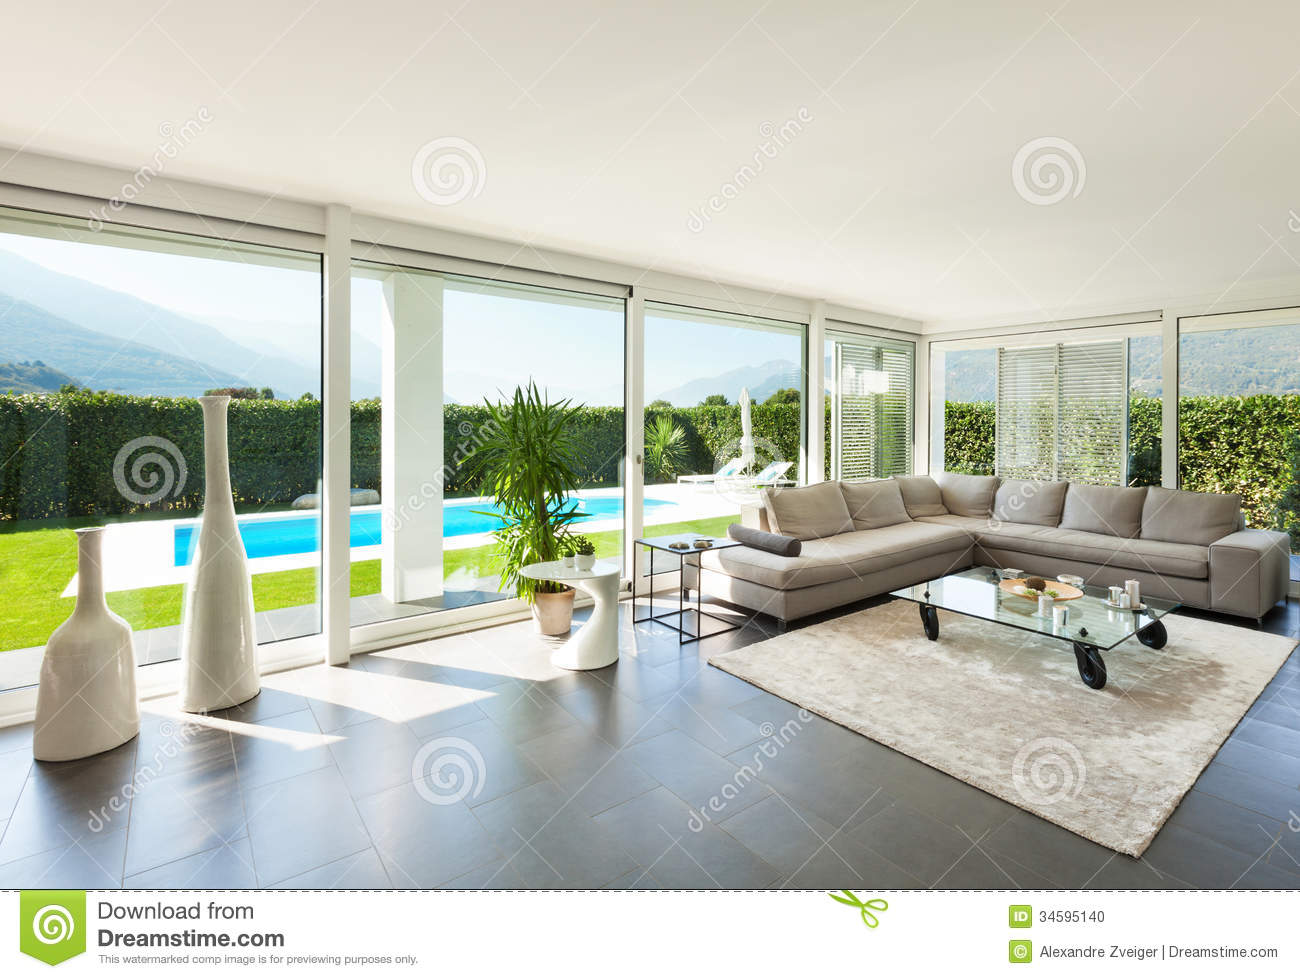 Interior, Beautiful Living Room Stock Photo - Image: 34595140